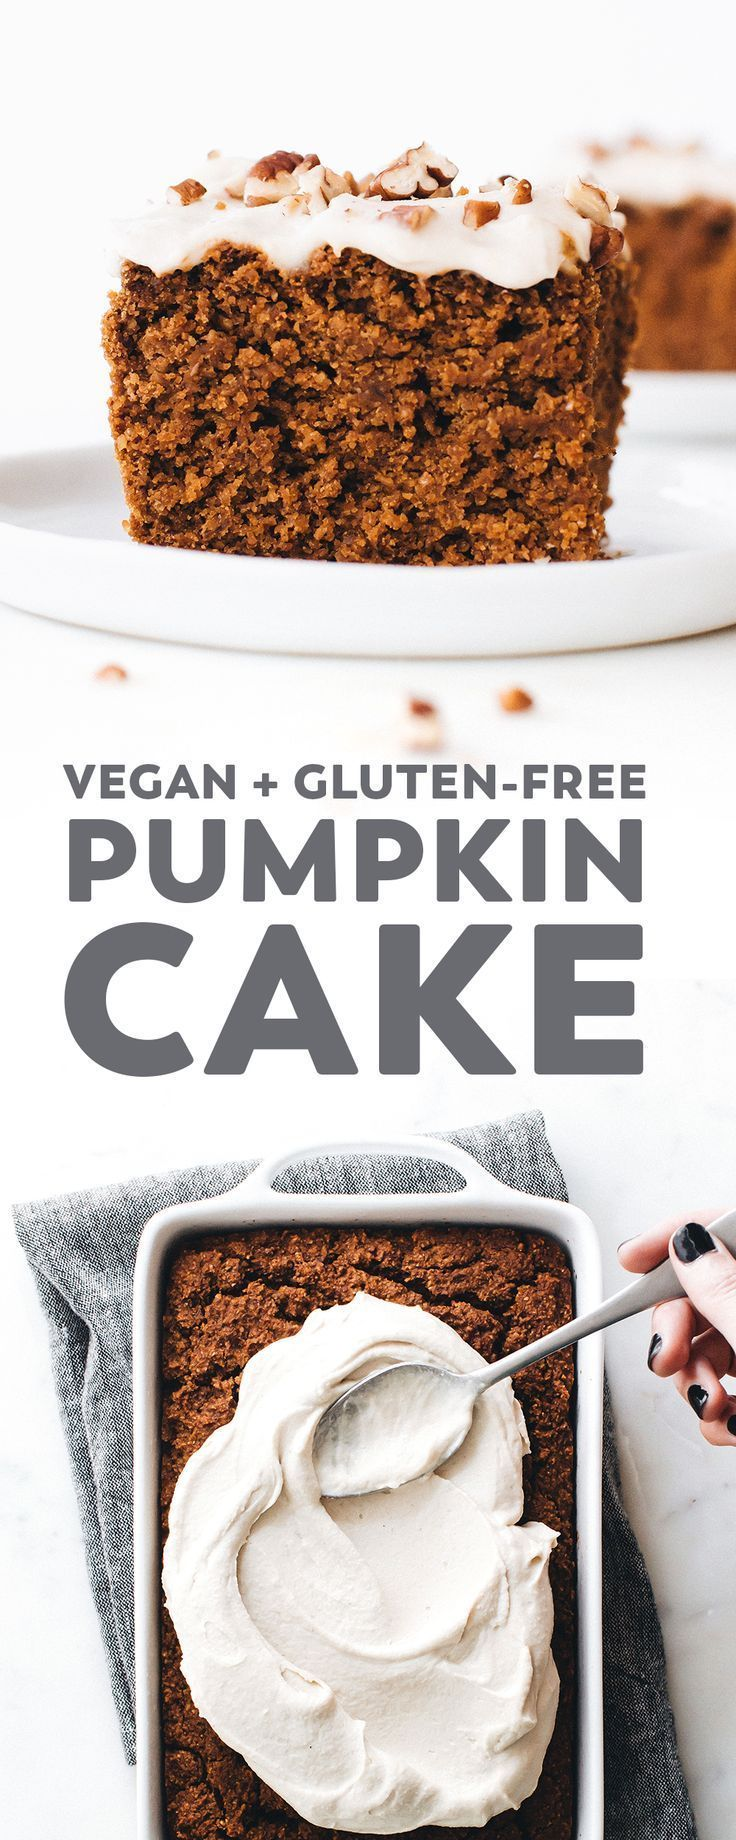 Pin By Baylee Thorne On Desserts In 2019 Vegan Dessert Recipes